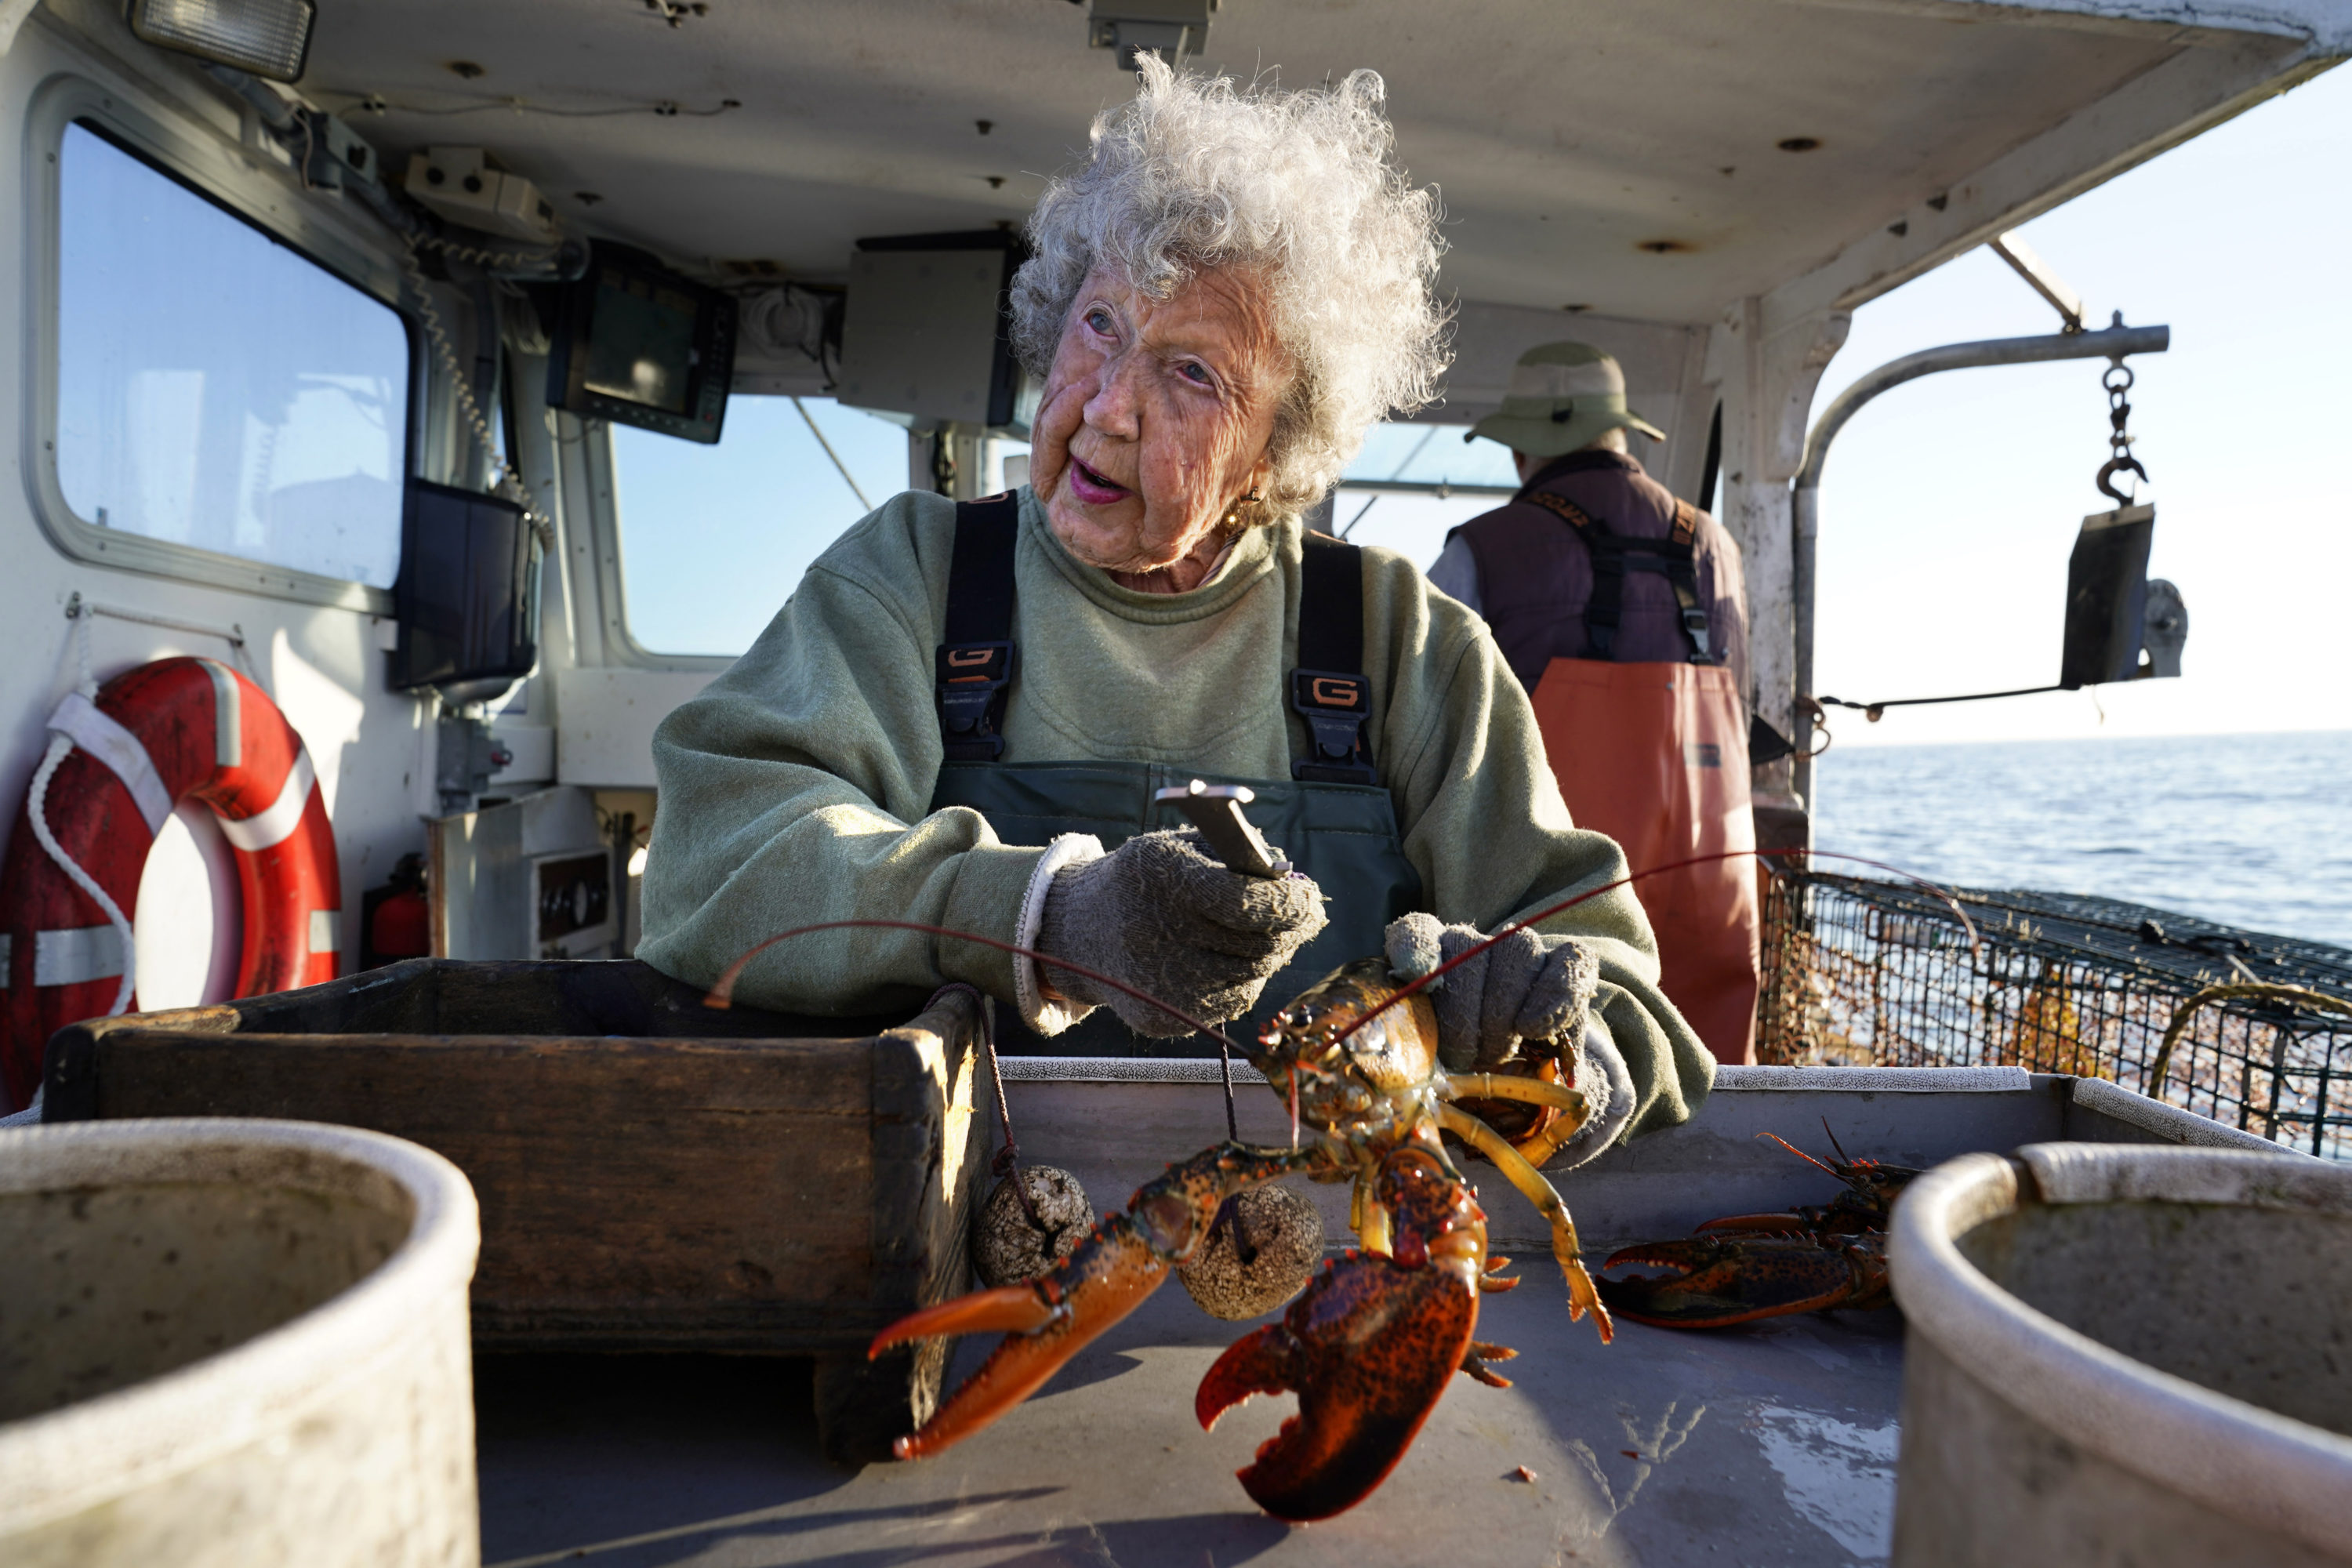 Virginia Oliver, age 101, works as a sternman, measuring and banding lobsters on her son Max Oliver's boat, Aug. 31, 2021, off Rockland, Maine. The state's oldest lobster harvester has been doing it since before the onset of the Great Depression. (Robert F. Bukaty/AP)